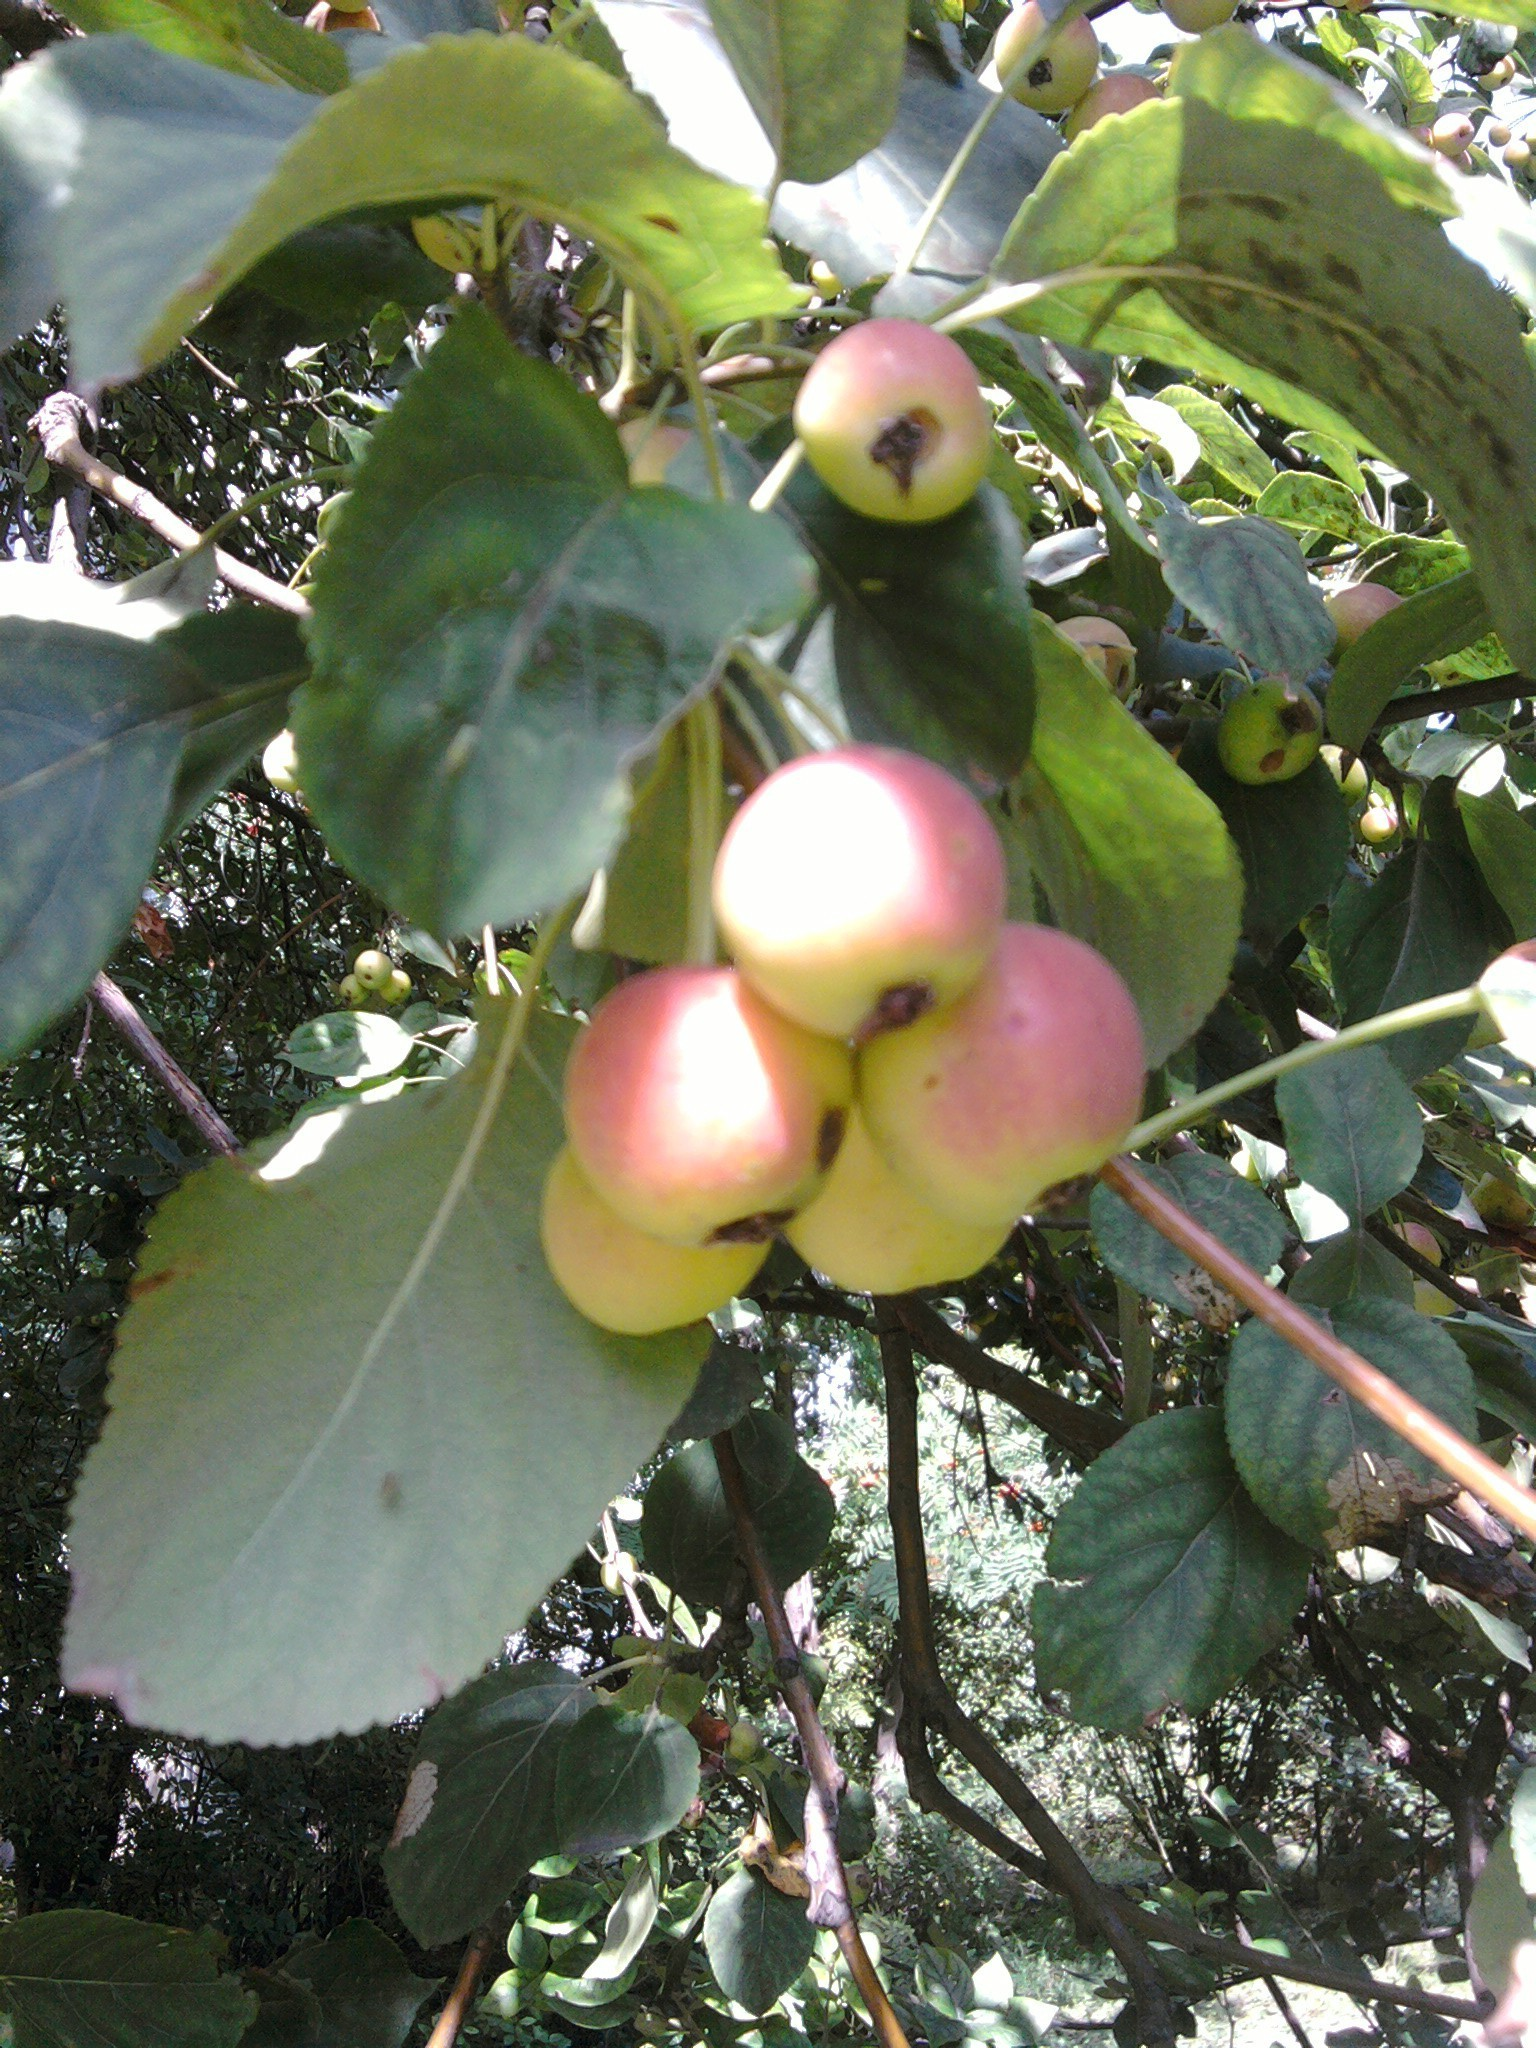 the garden fruit nature leaf tree food branch apple outdoors flora pasture agriculture farm garden season summer fall color healthy bright